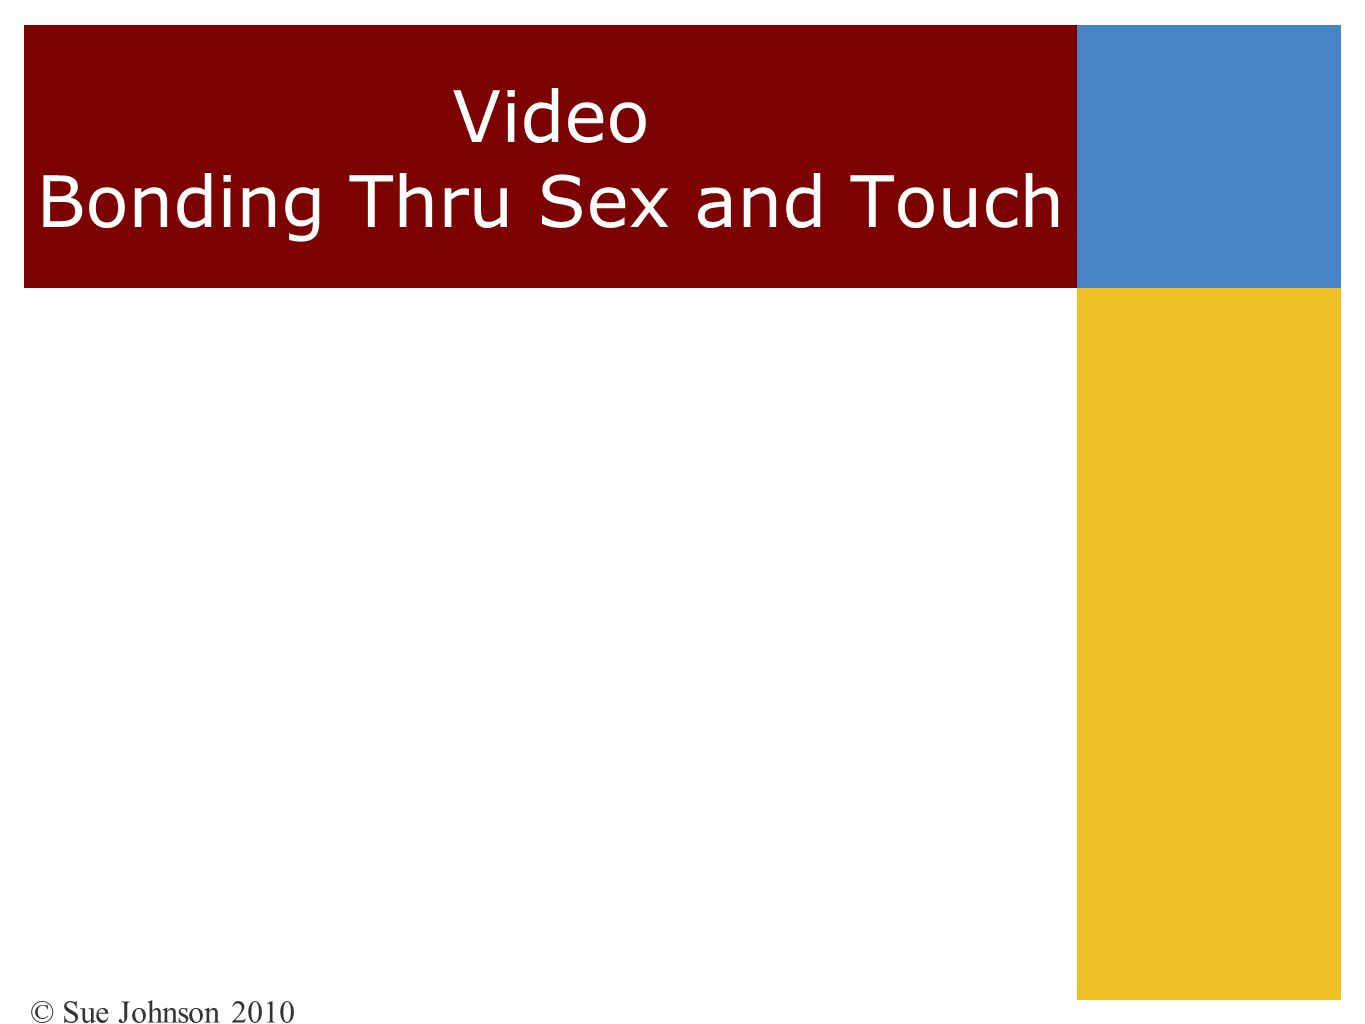 Video Bonding Thru Sex and Touch